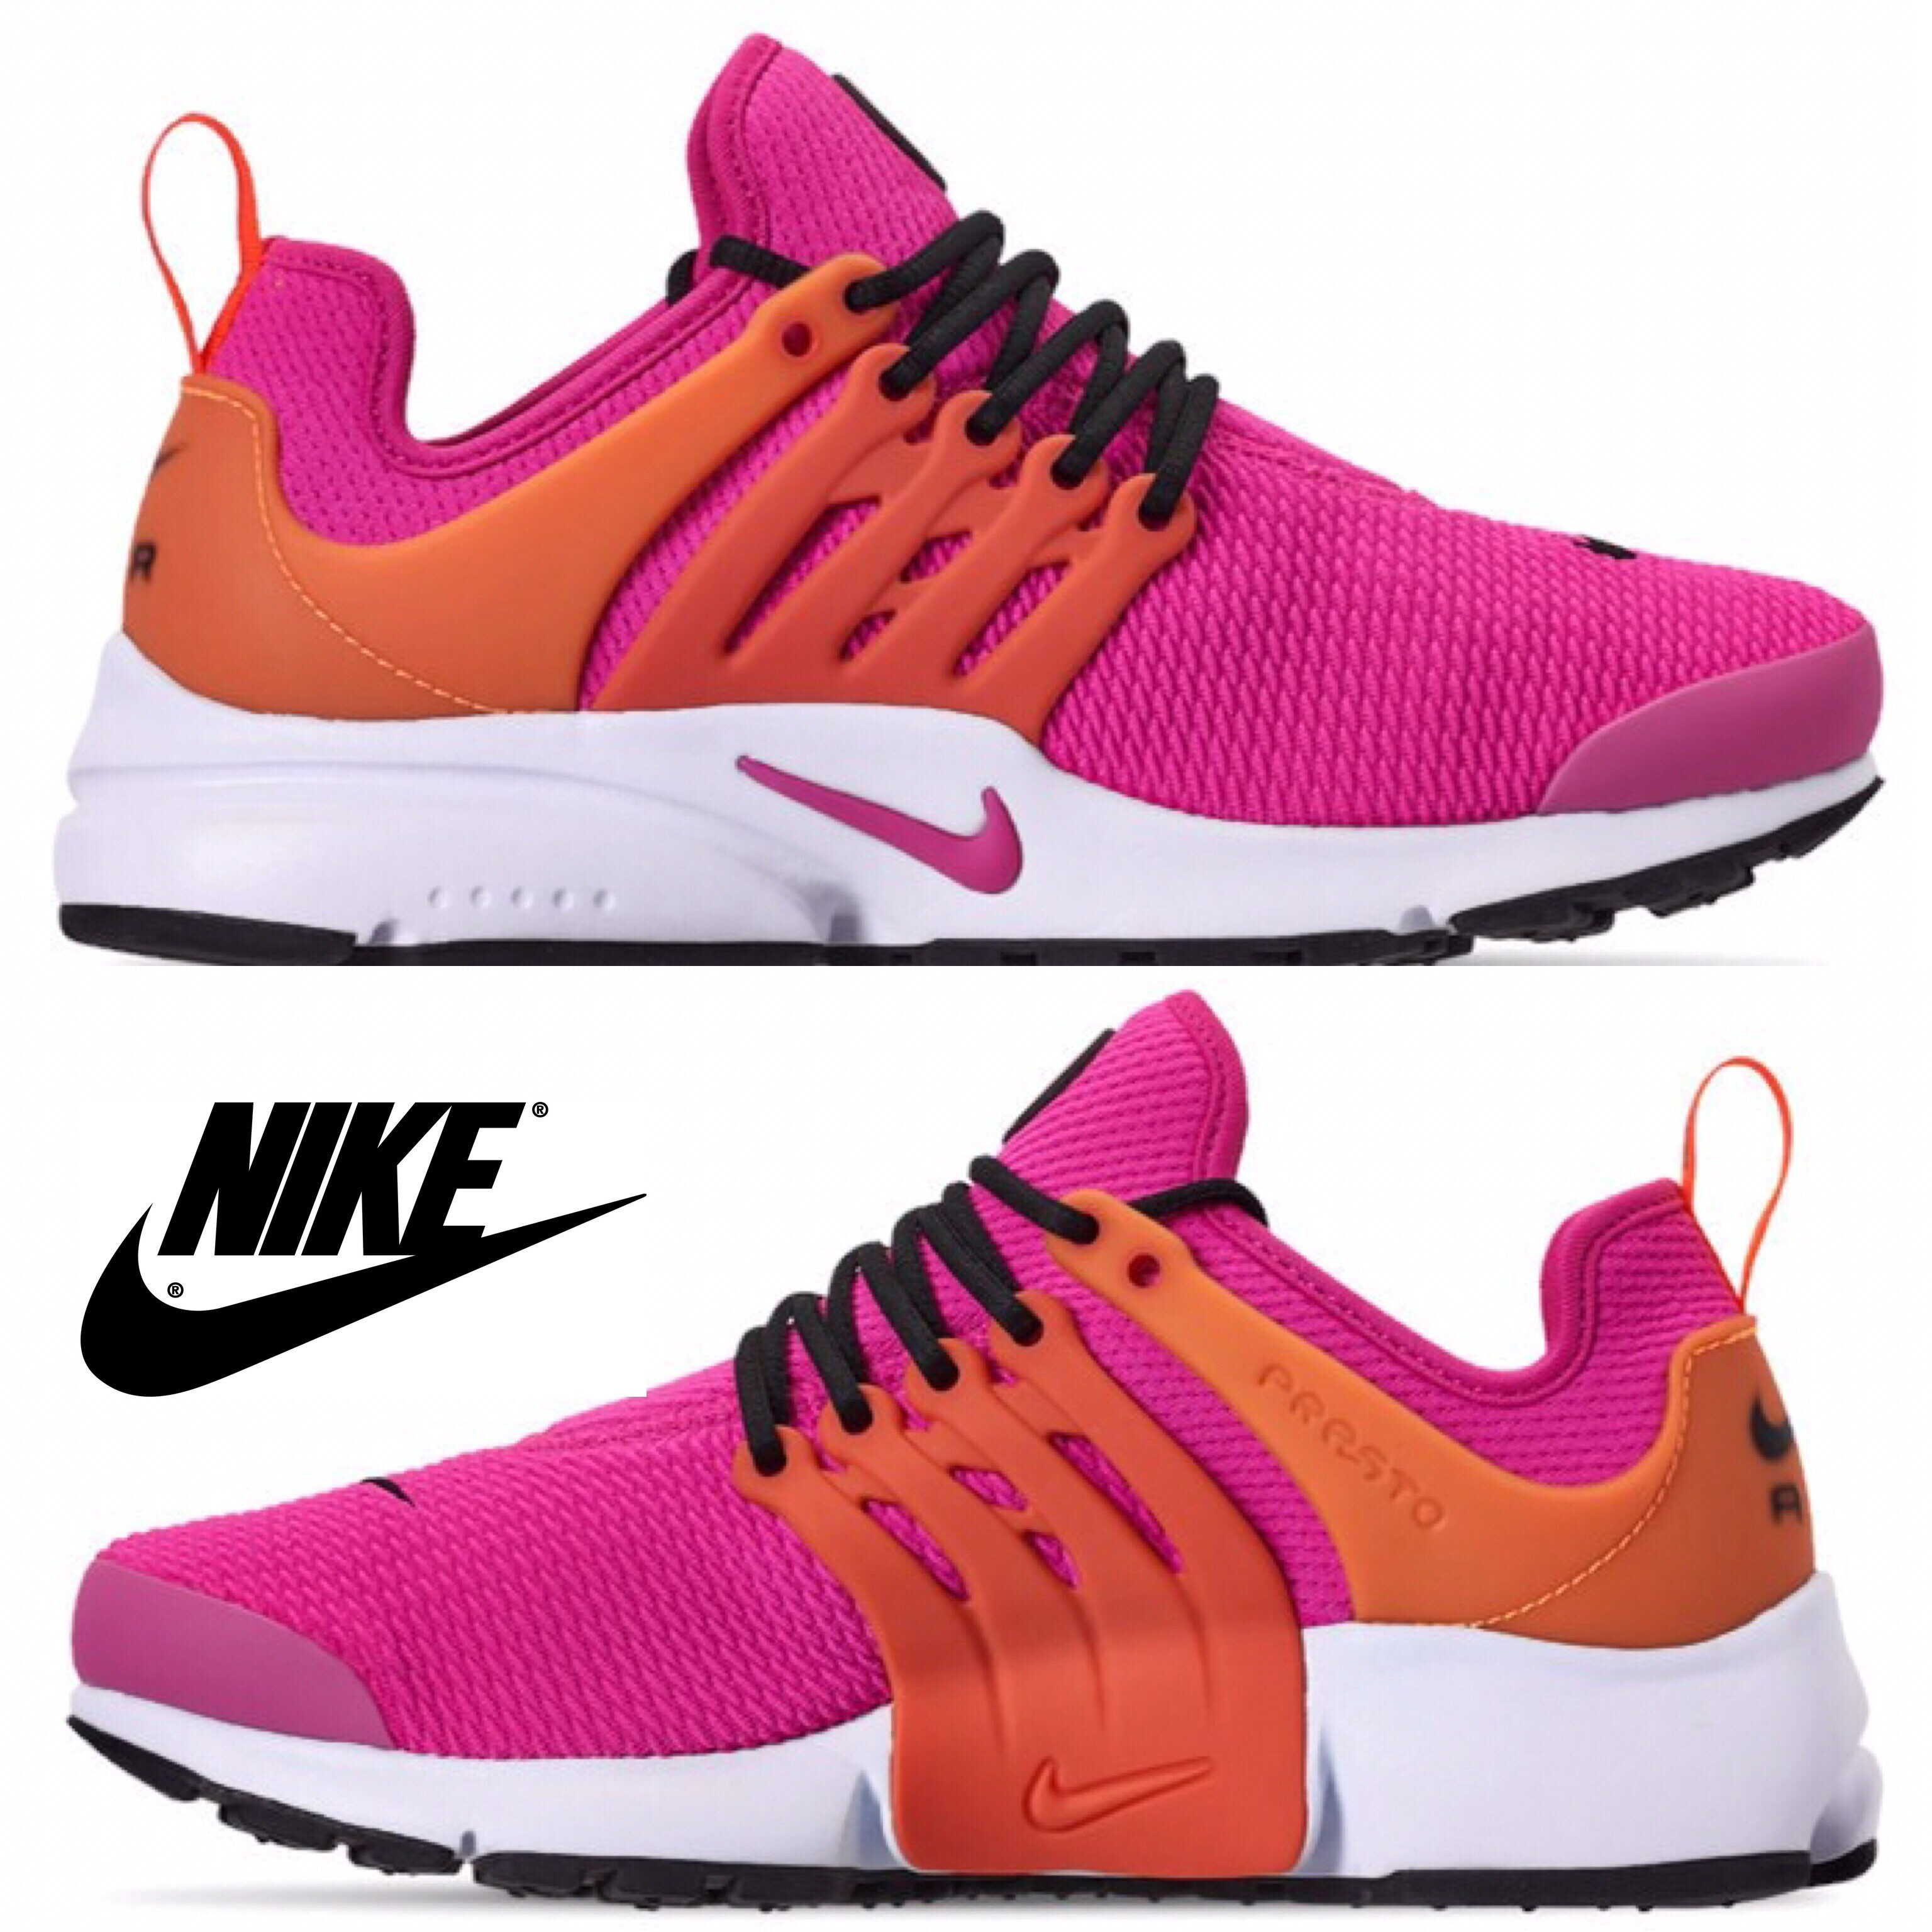 new style 83919 b1d16 Details about Nike Air Presto Women s Sneakers Sport Shoes Running Gym  Comfort Casual NIB